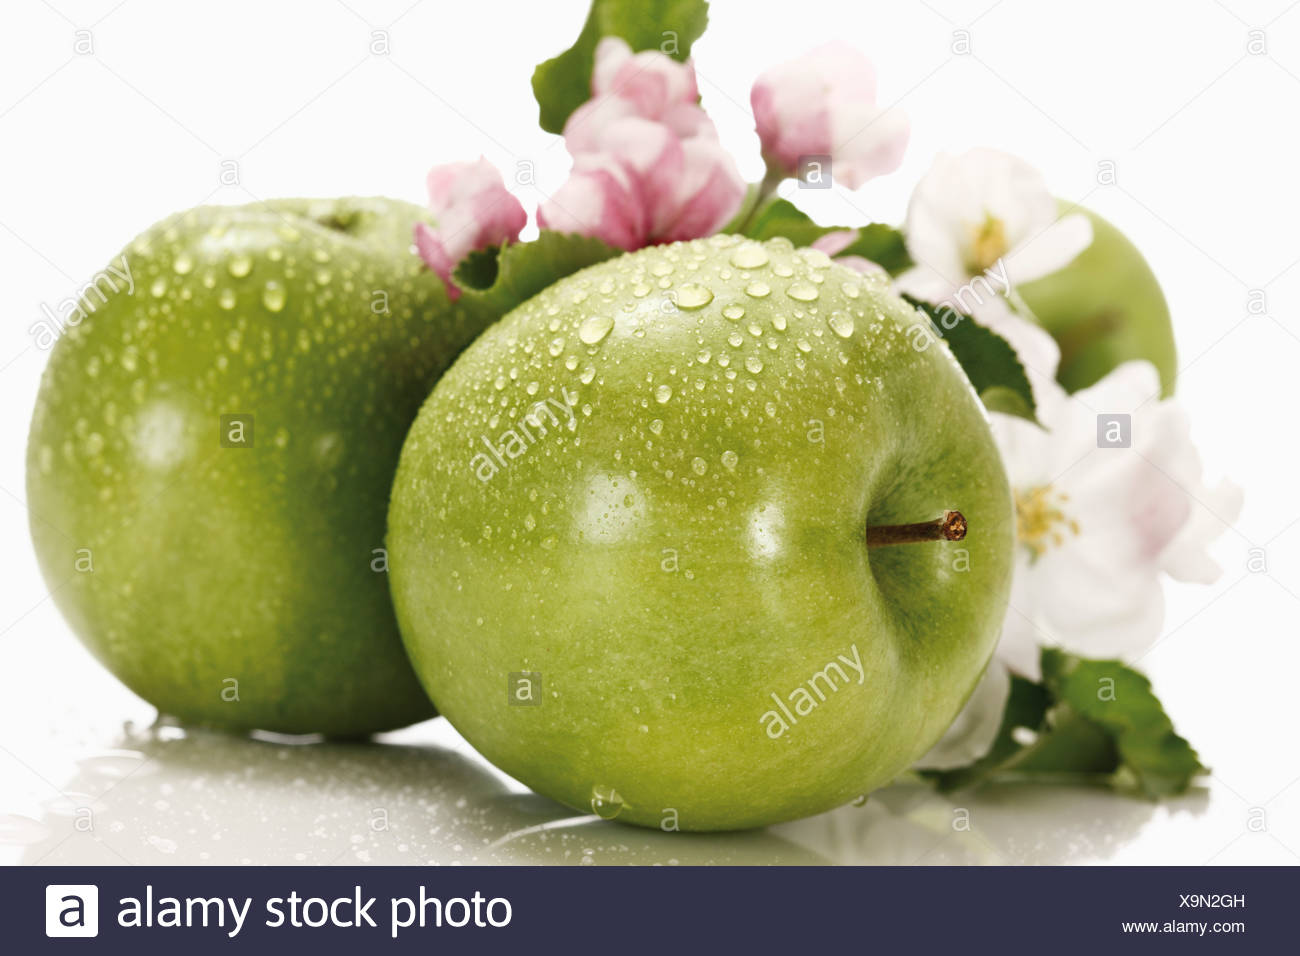 Green apples with water droplets, in background apple blossom, close-up - Stock Image